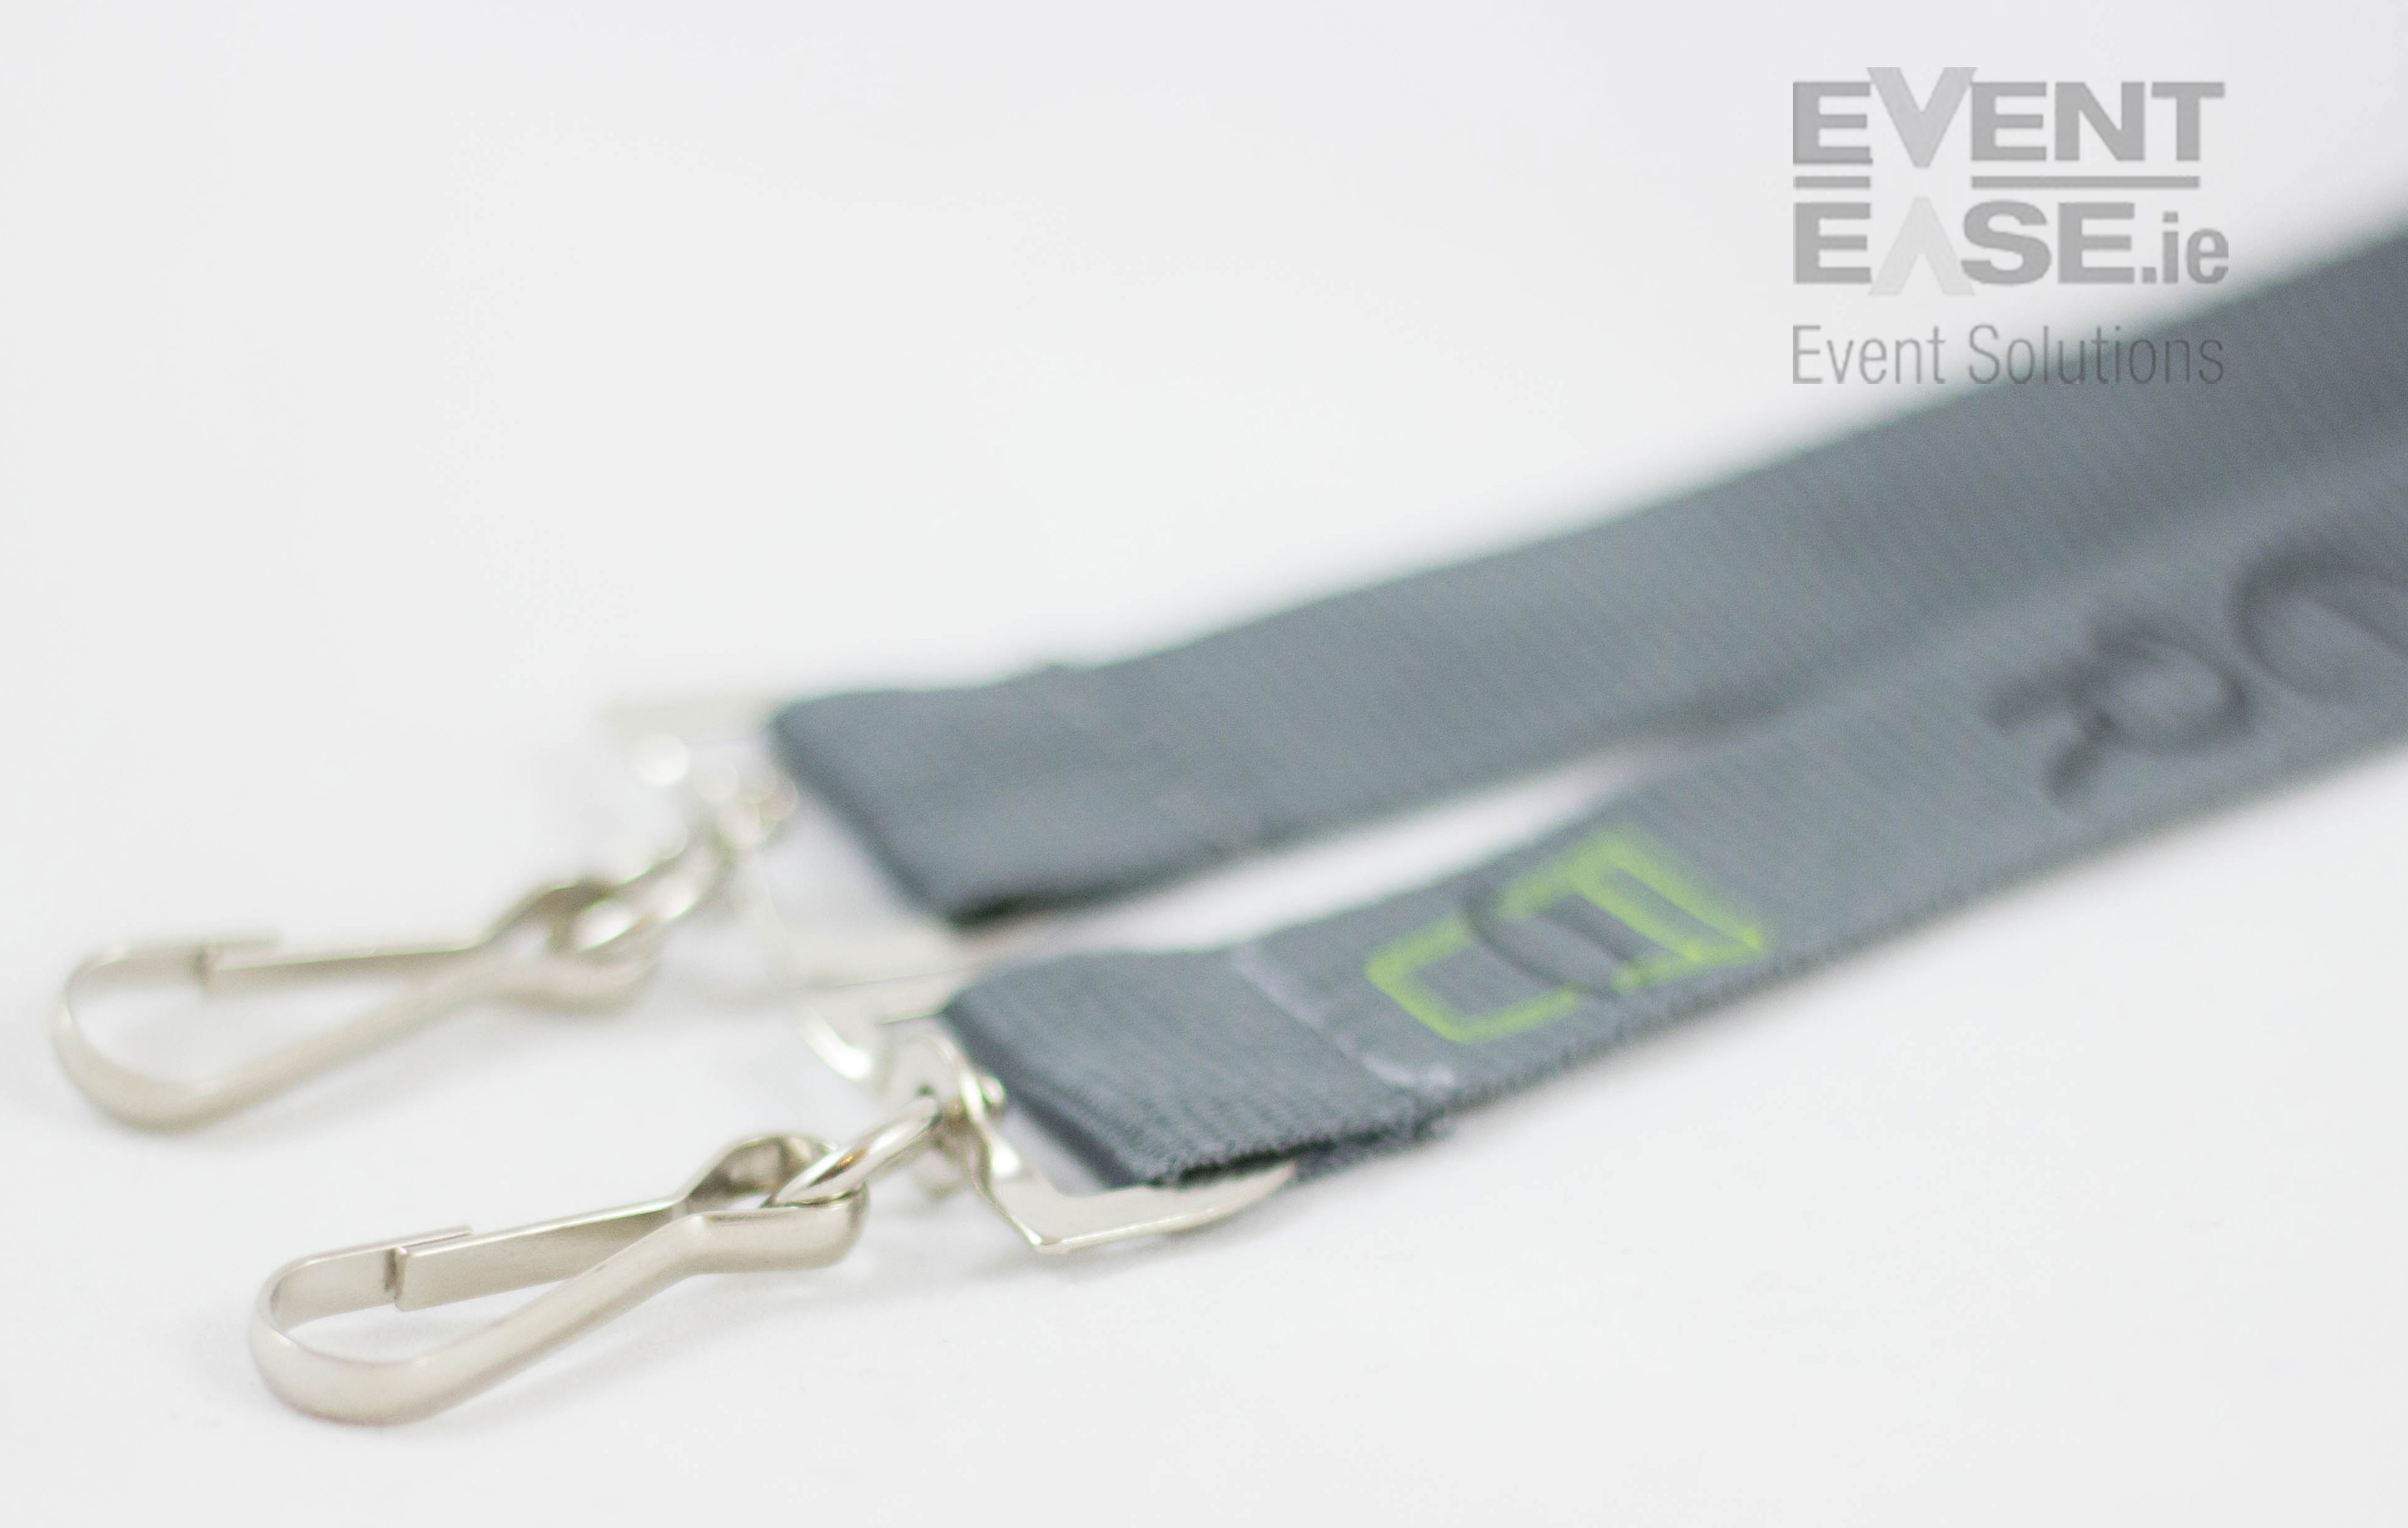 Plain Lanyard with Clip